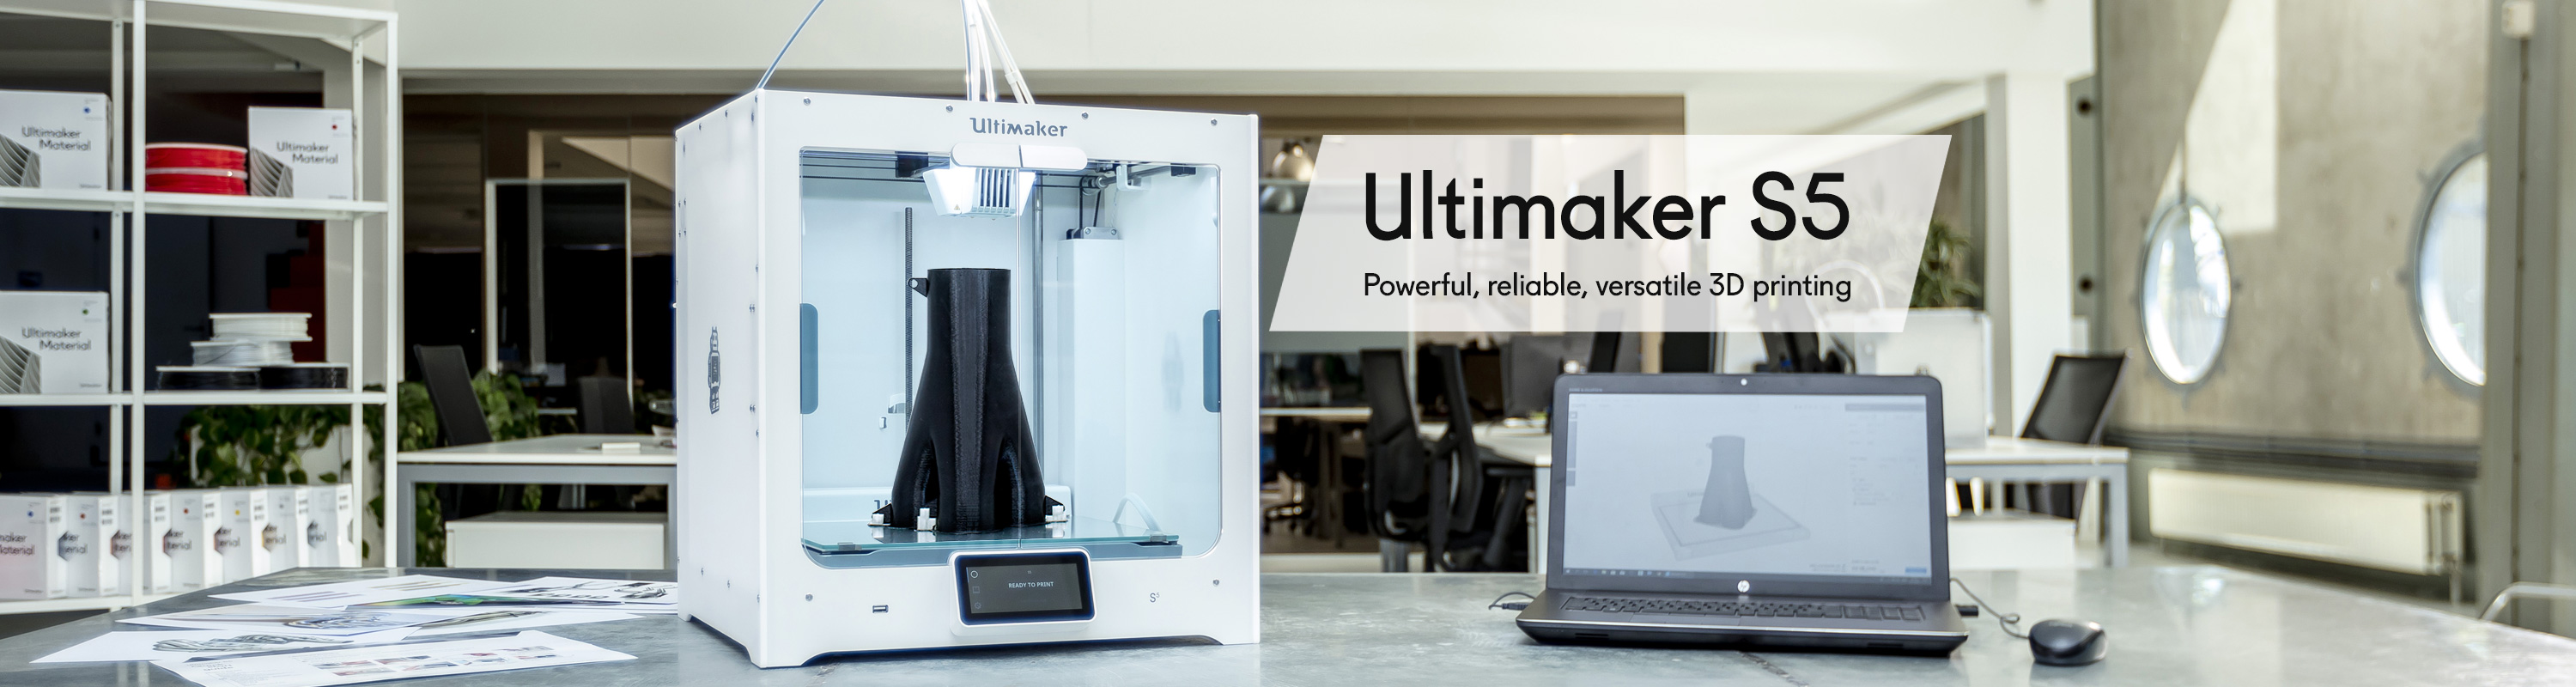 slide-ultimaker